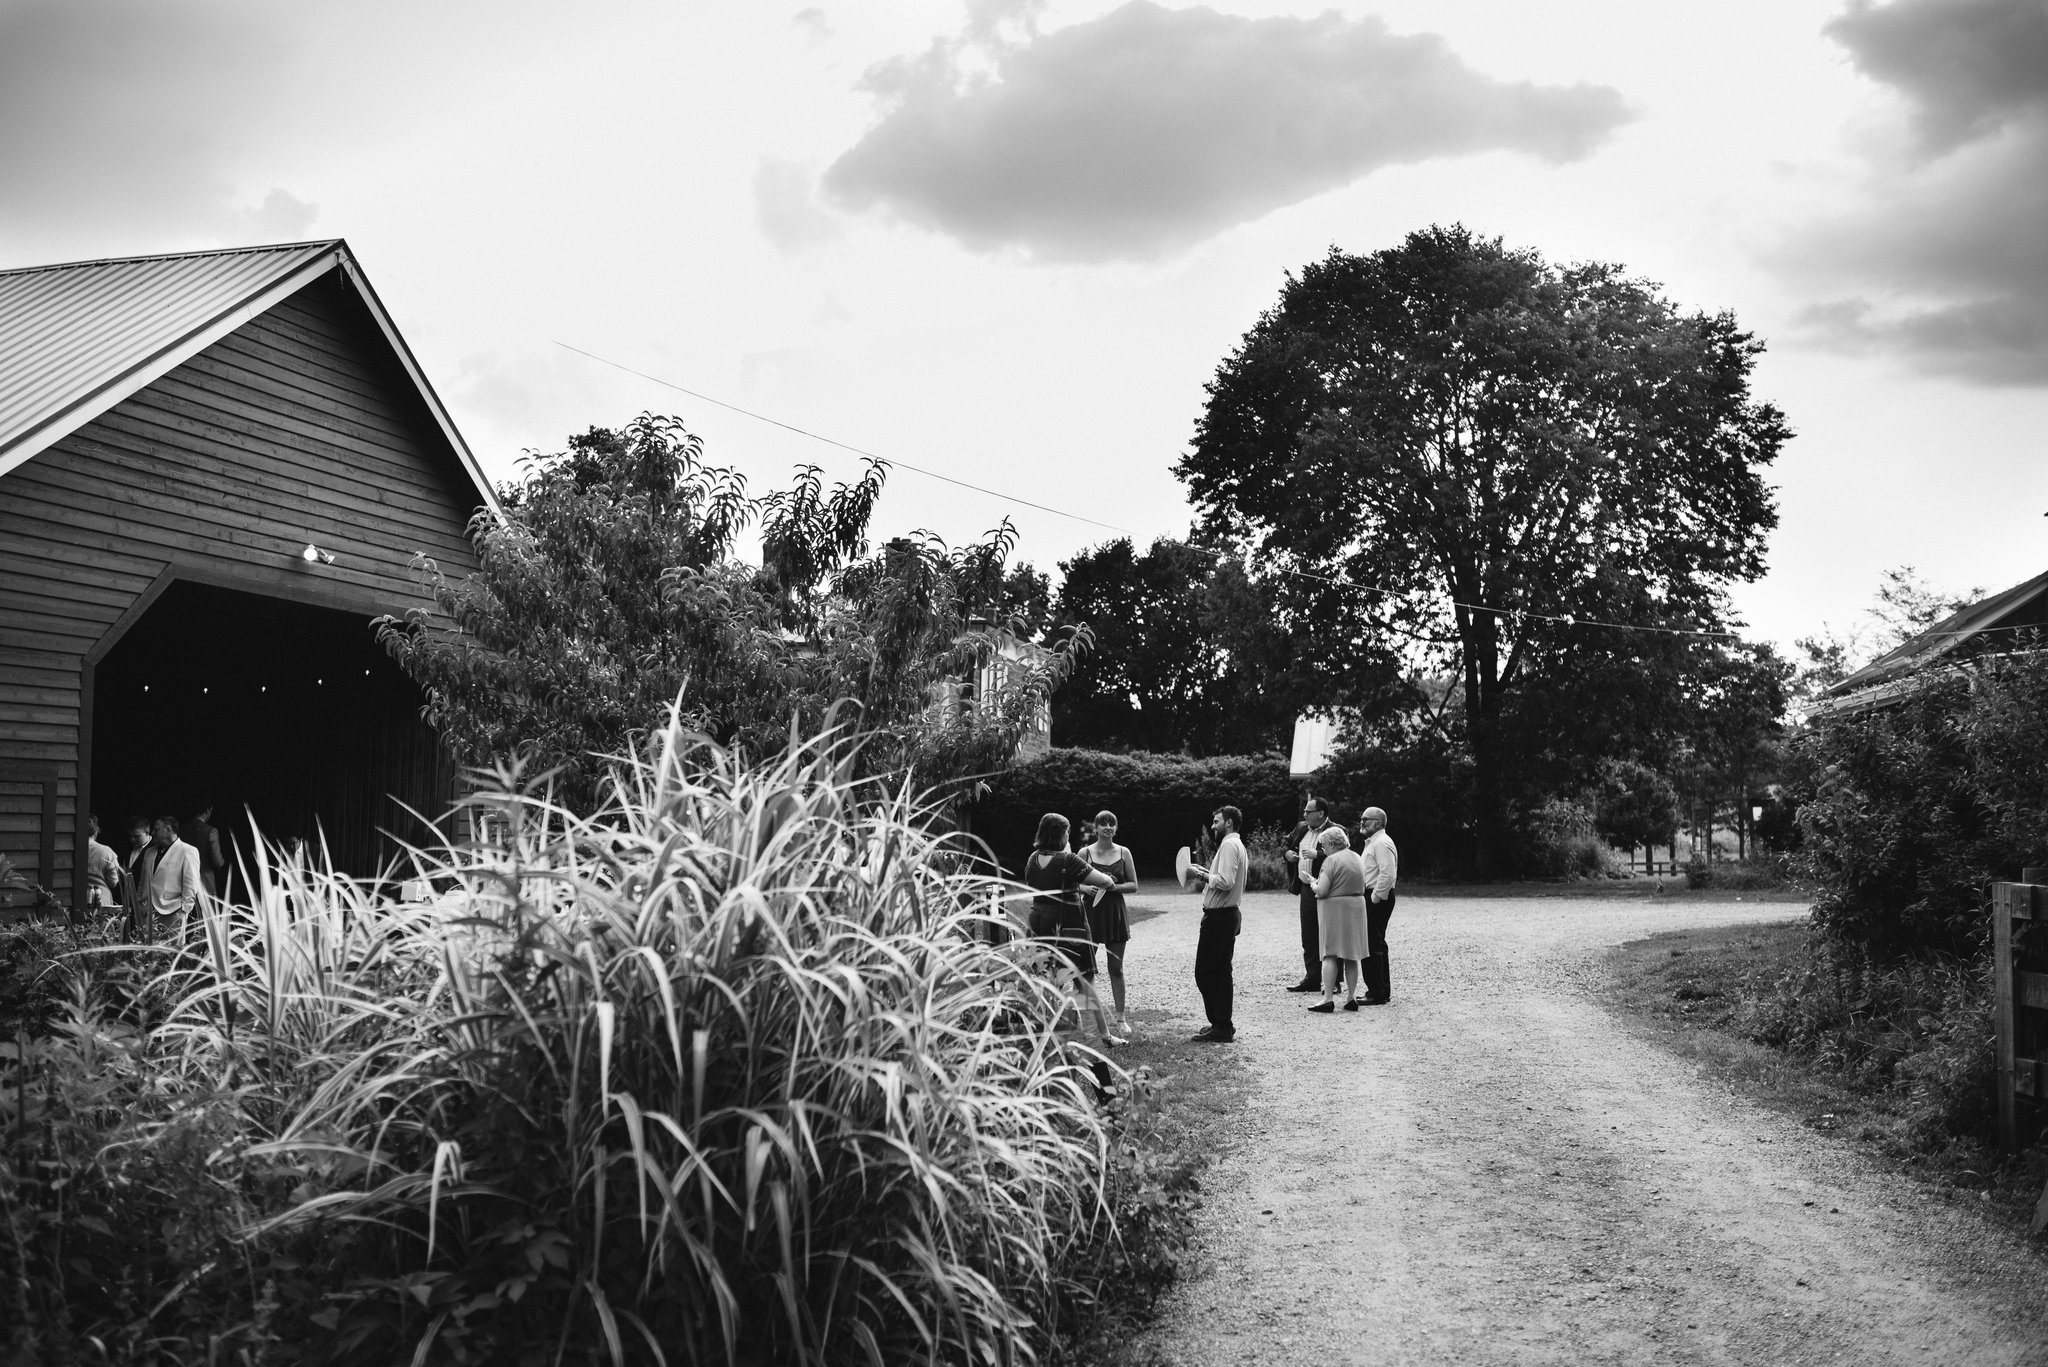 Rocklands Farm, Maryland, Intimate Wedding, Baltimore Wedding Photographer, Sungold Flower Co, Rustic, Romantic, Barn Wedding, Wedding Guests Talking Outside Barn, Black and White Photo